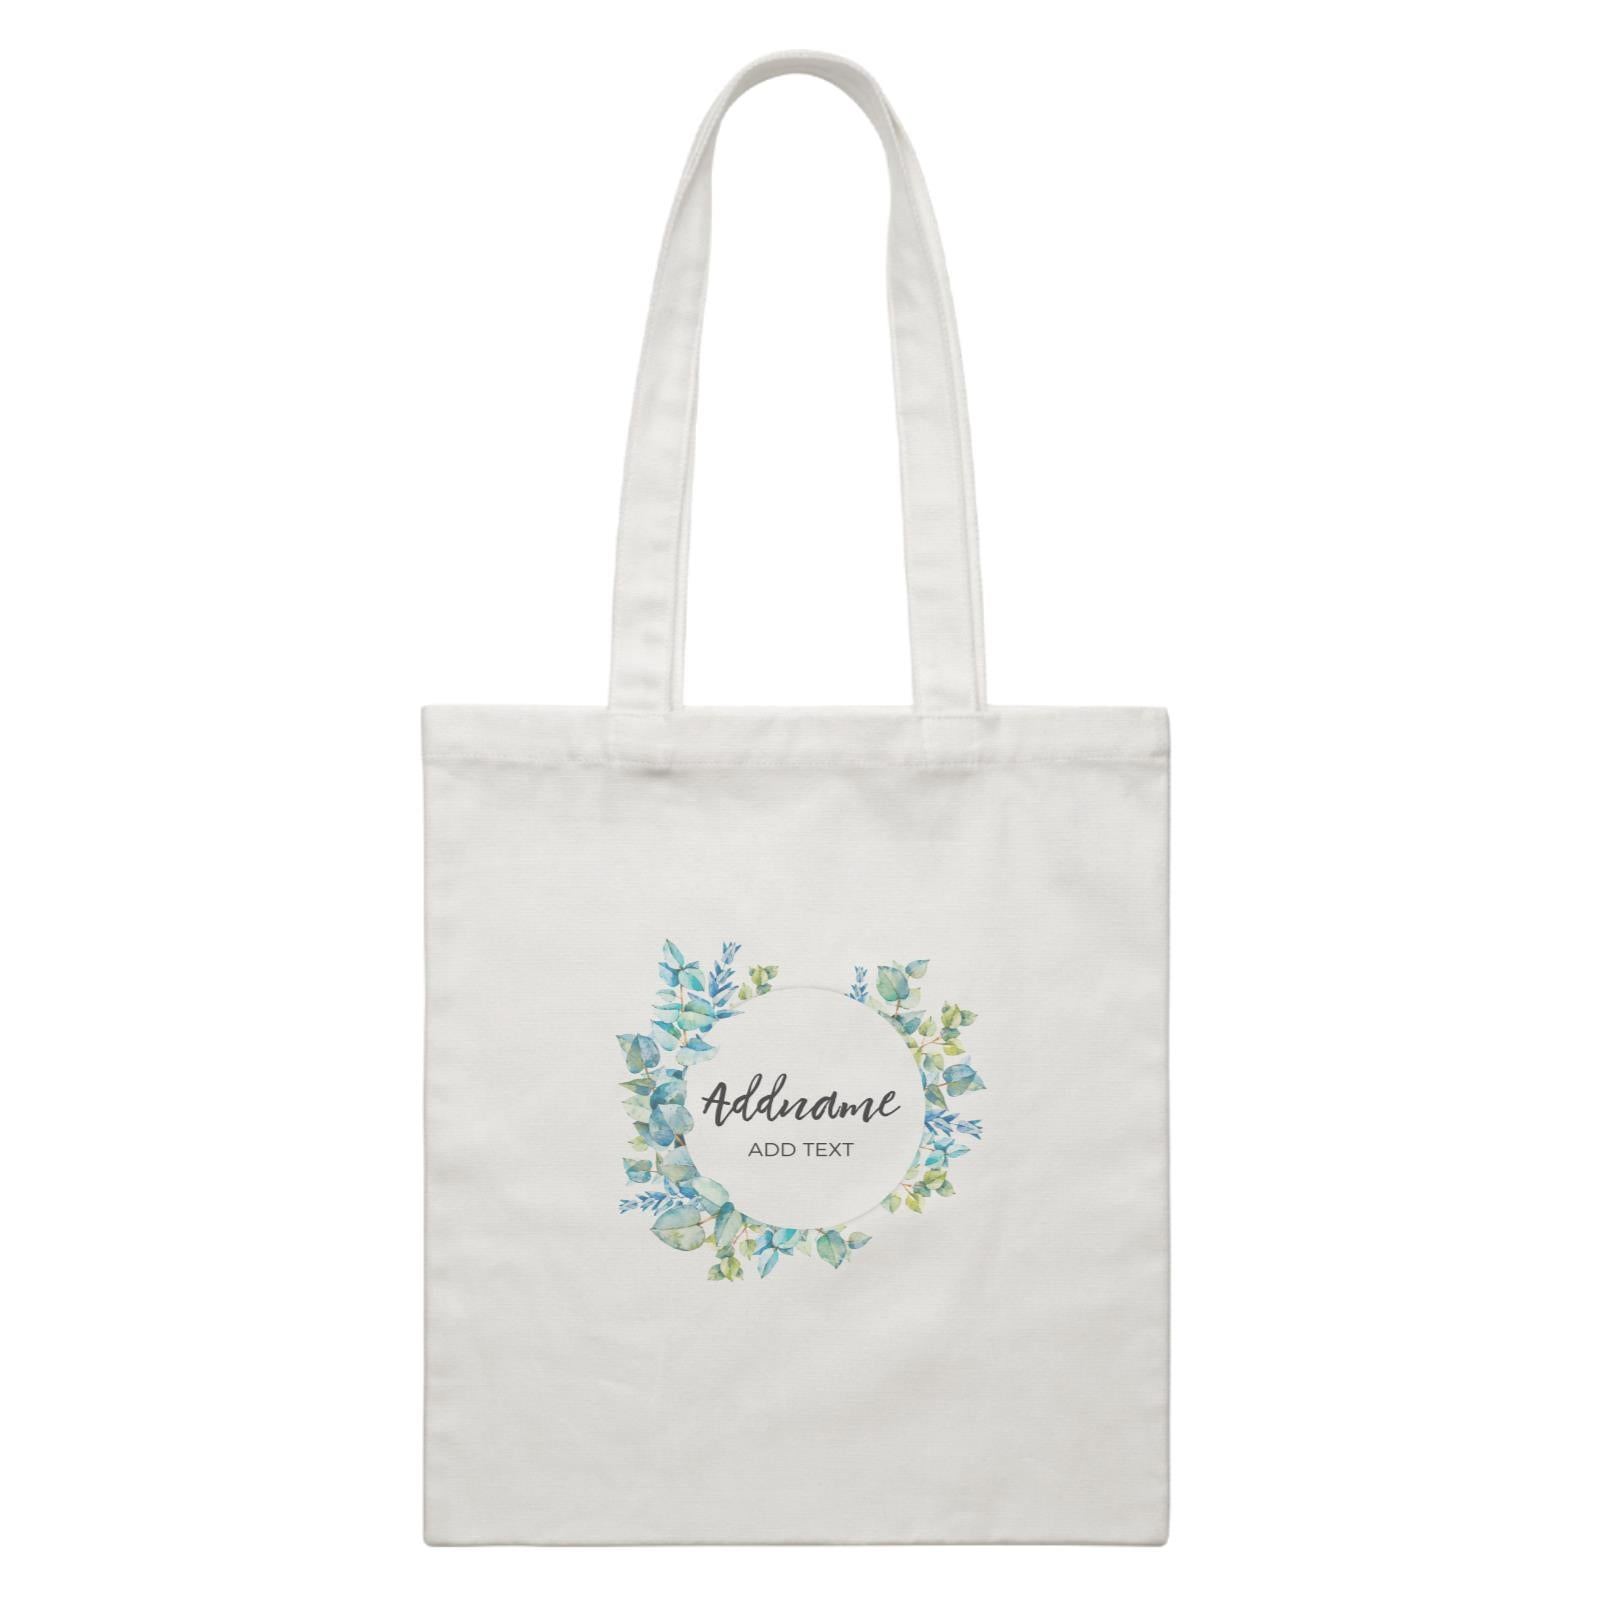 Add Your Own Text Teacher Blue Leaves Wreath Addname And Add Text White Canvas Bag